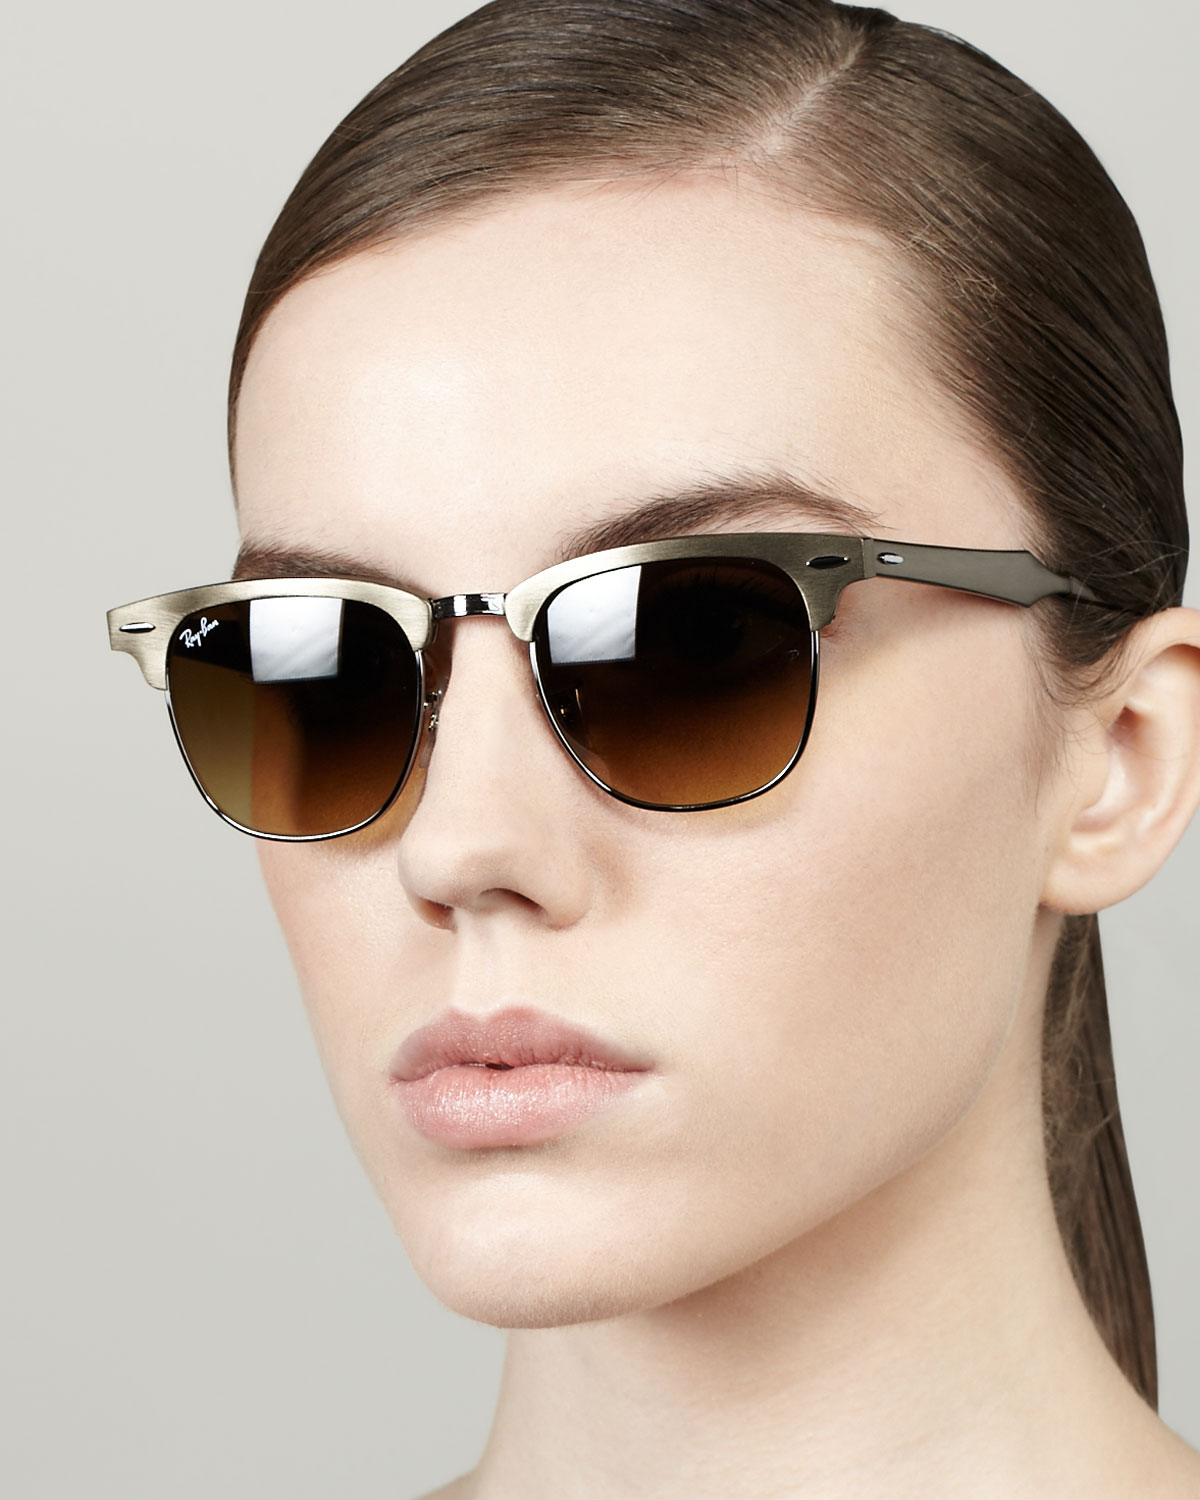 64736c54a6 Lyst - Ray-Ban Metal Frame Clubmaster Sunglasses in Metallic